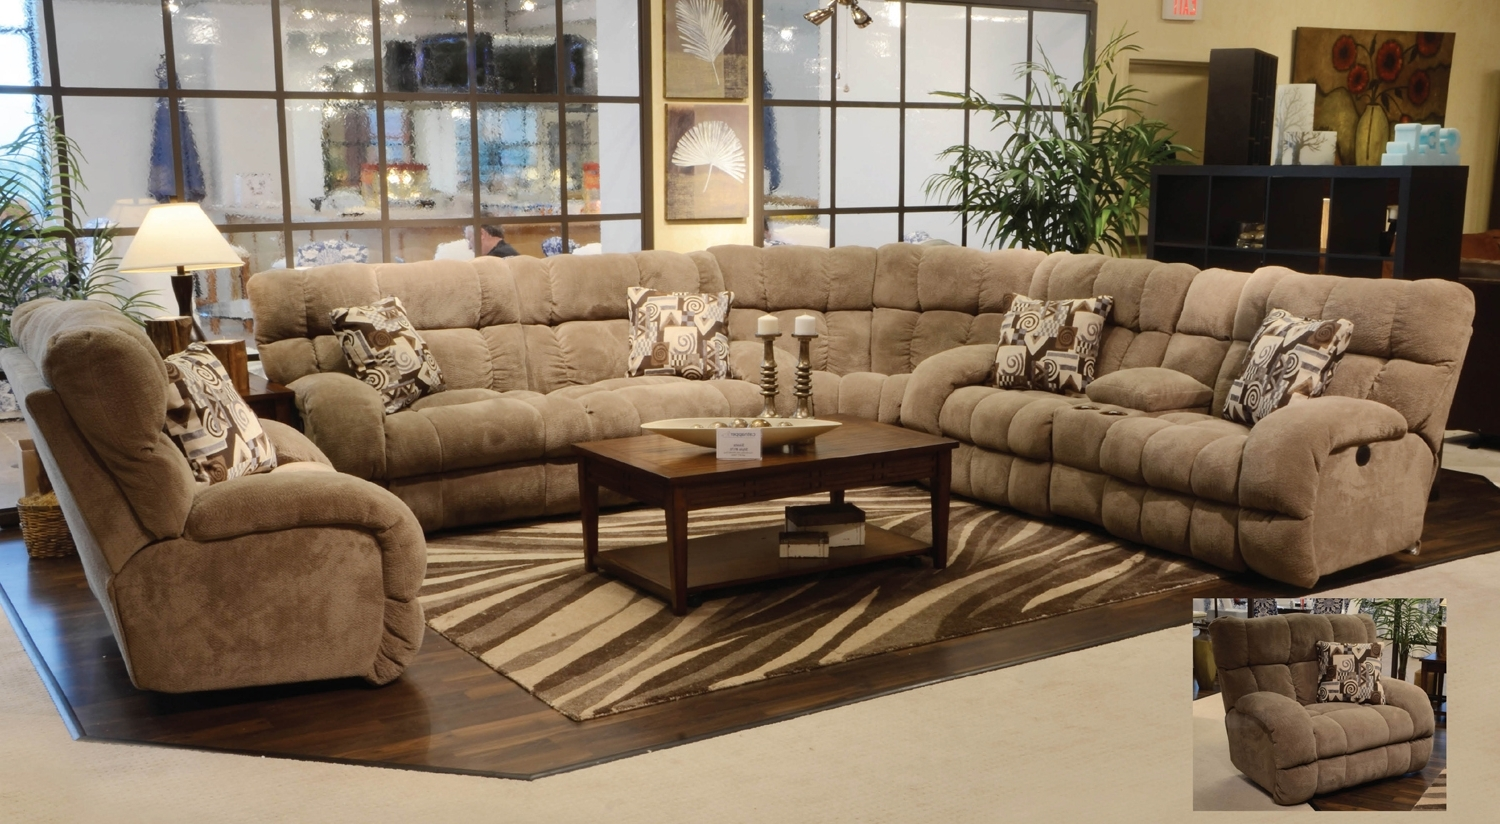 Furniture : Sectional Sofa 110 X 110 Corner Couch Ideas Sectional For Well Known 110X110 Sectional Sofas (View 3 of 15)